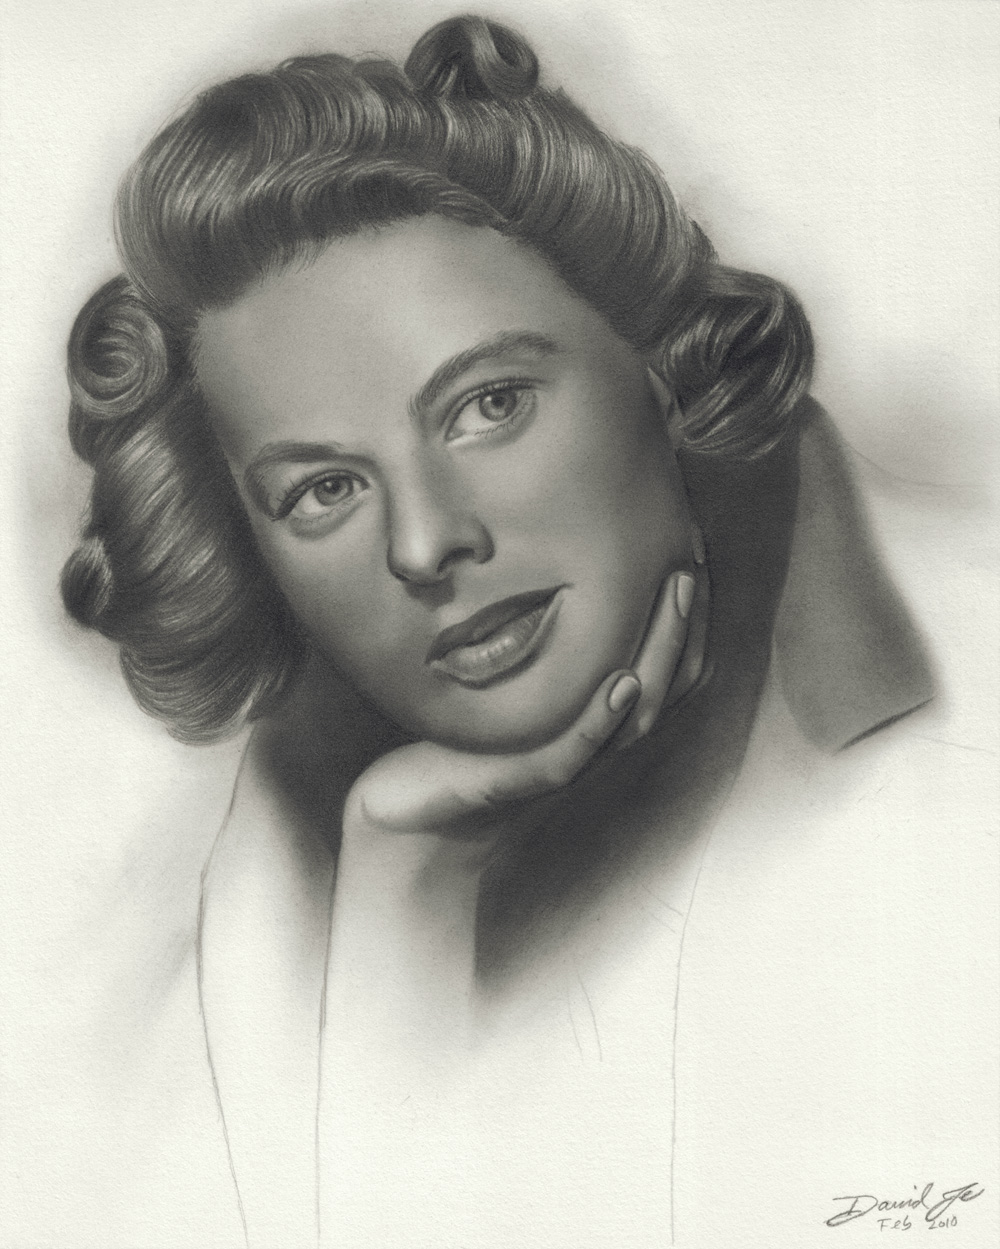 Ingrid-Bergman-May-09-2010-Final-1200dpi-Ready-for-Web Stunningly And Incredibly Realistic Pencil Portraits